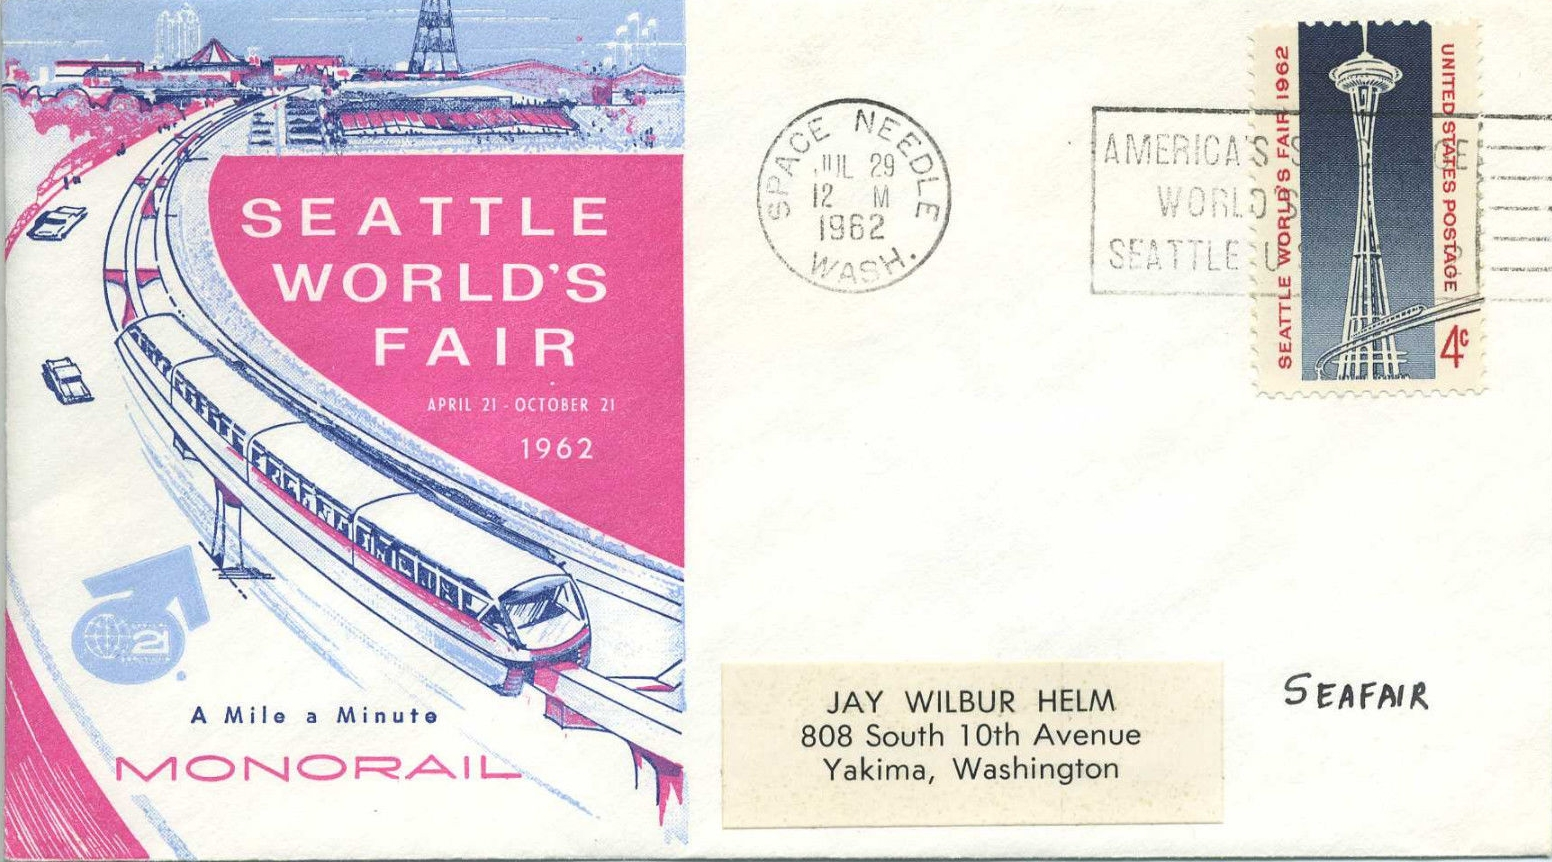 United States - Scott #1196 (1962) on cover posted from the Space Needle postal station with a cachet depicting the Monorail.